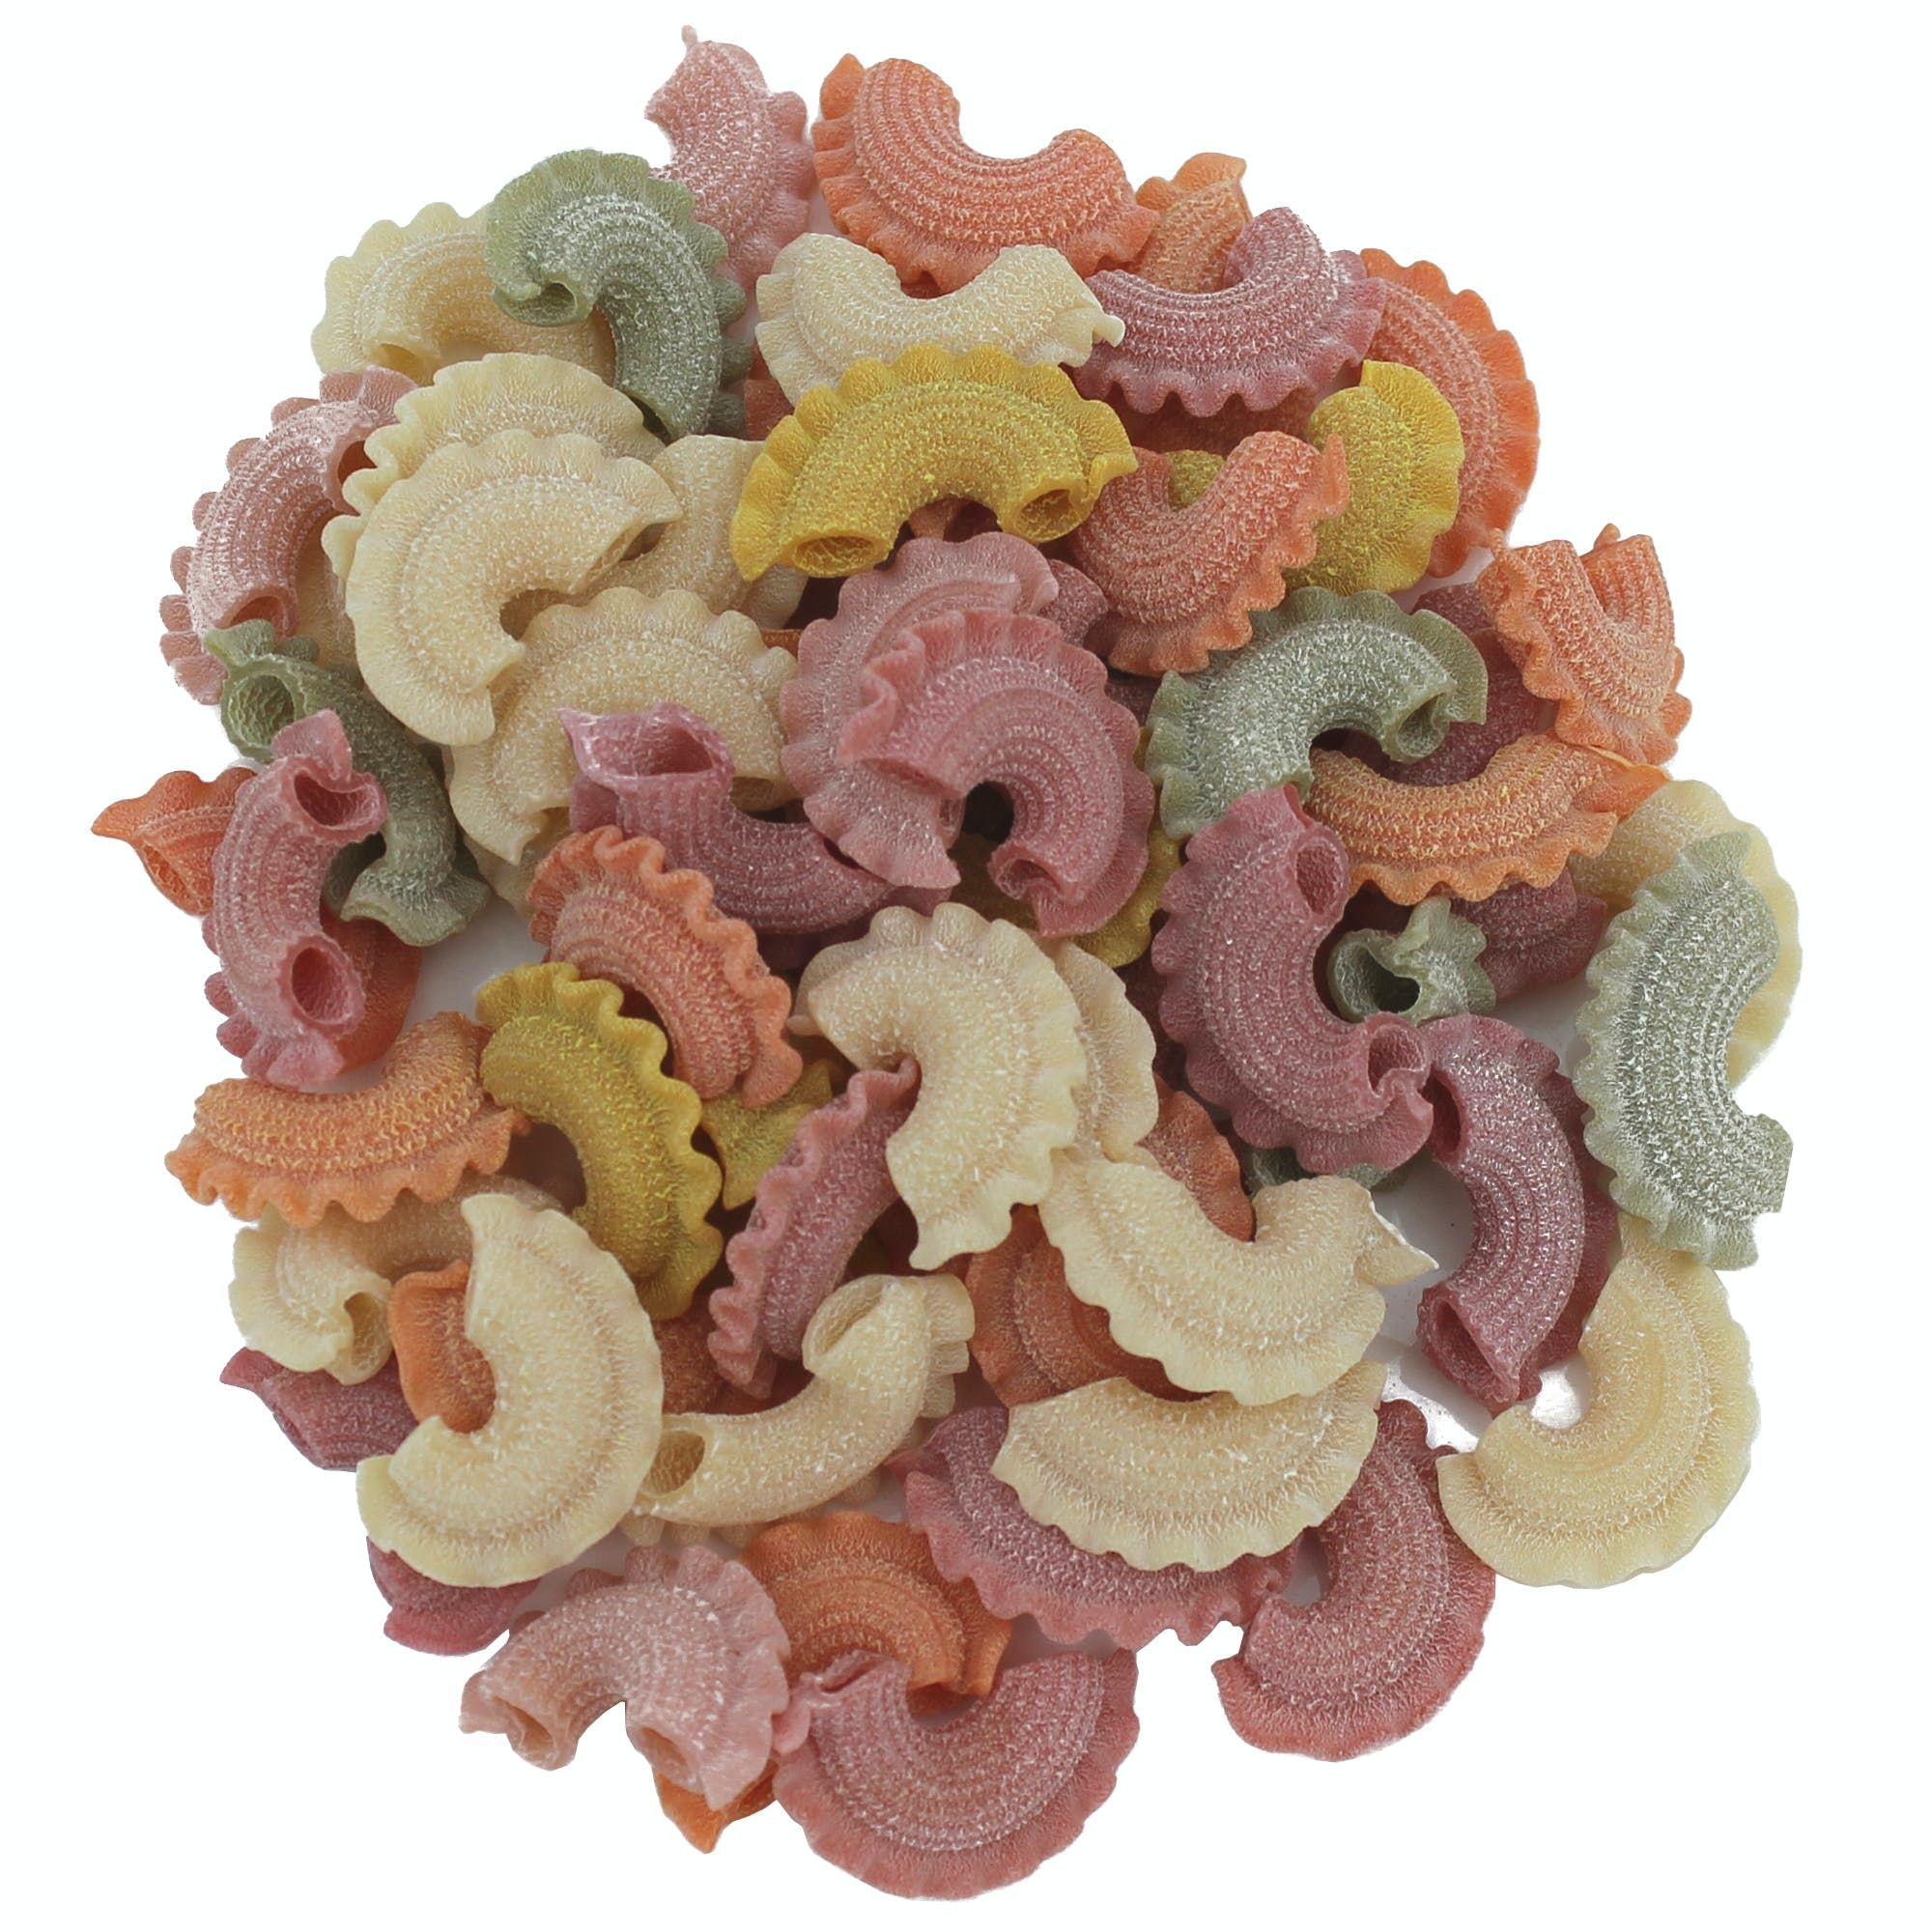 "Rooster Combs ""Galletti"" Colored Pasta Pasta sold by M5 Corporation"